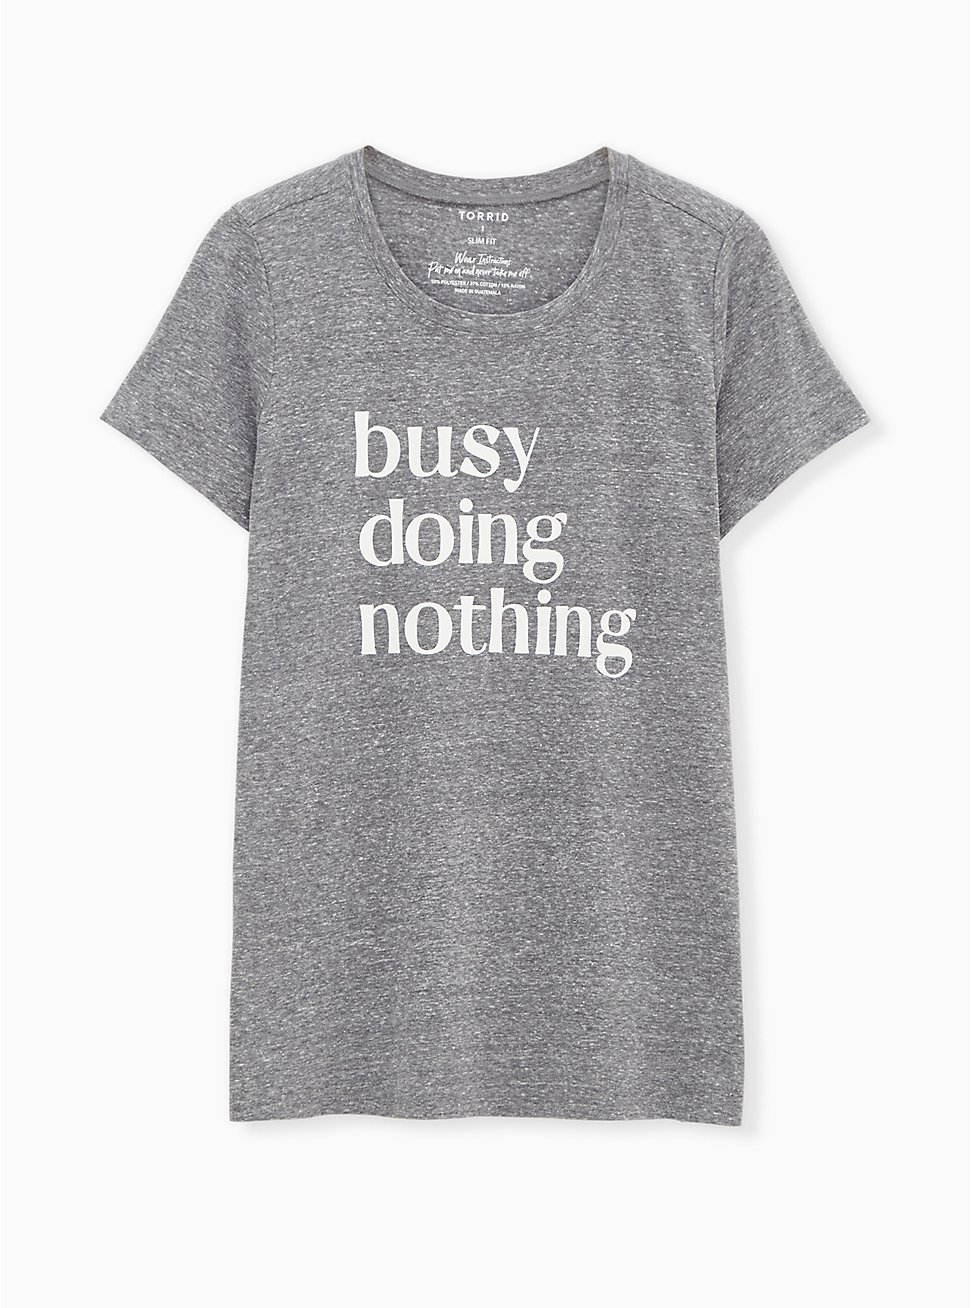 Plus Size Busy Doing Nothing Slim Fit Crew Tee - Triblend Jersey Heather Grey, MEDIUM HEATHER GREY, hi-res